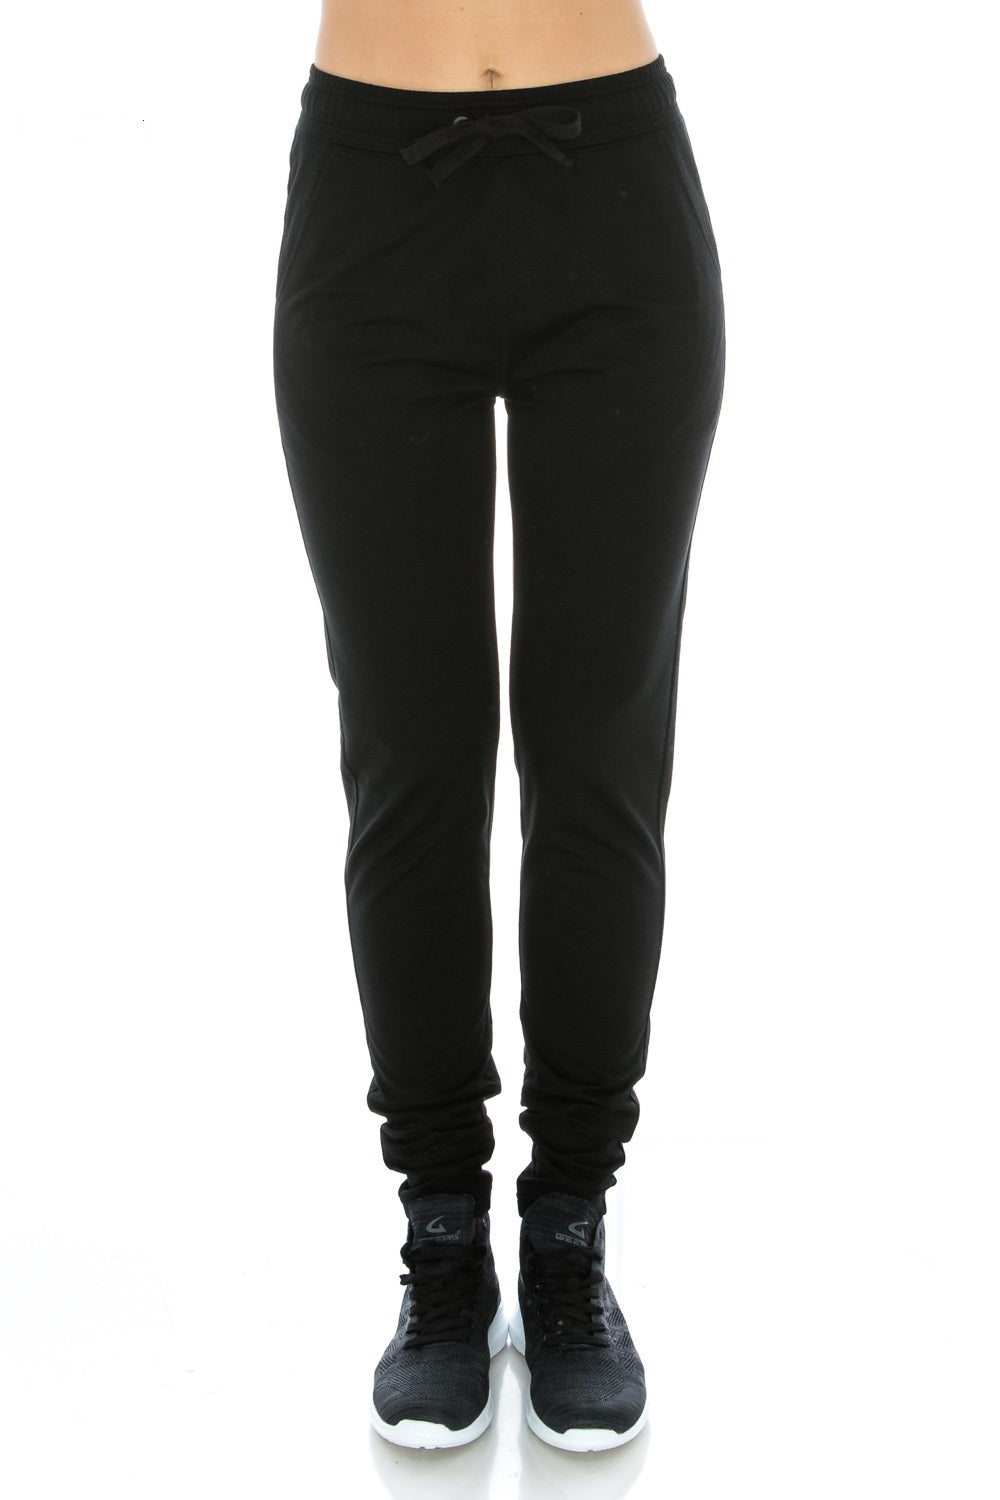 Black Fitted Unisex Workout Sweatpants - Poplooks